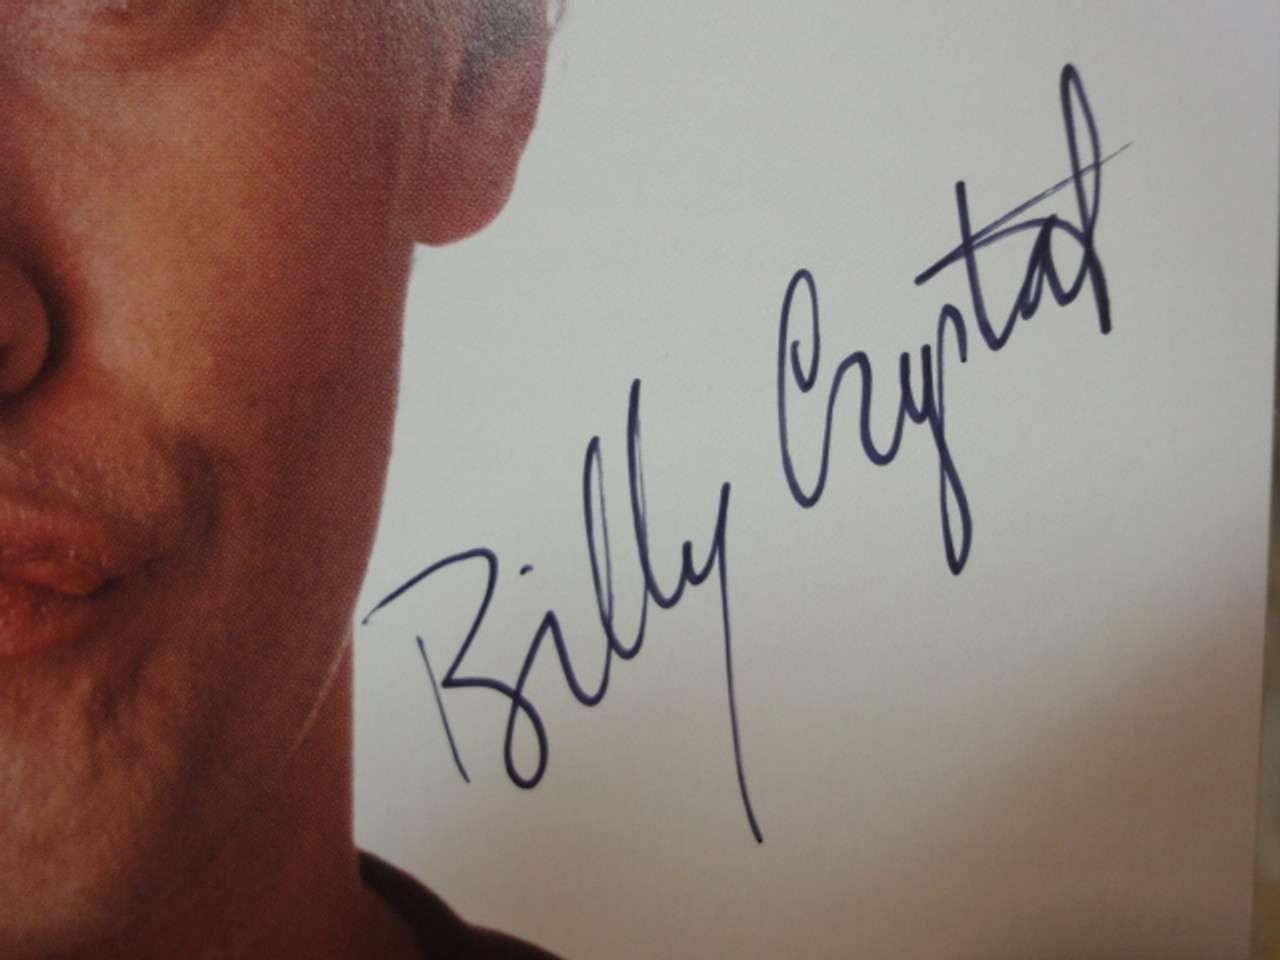 Crystal, Billy Color Photo Signed Autograph